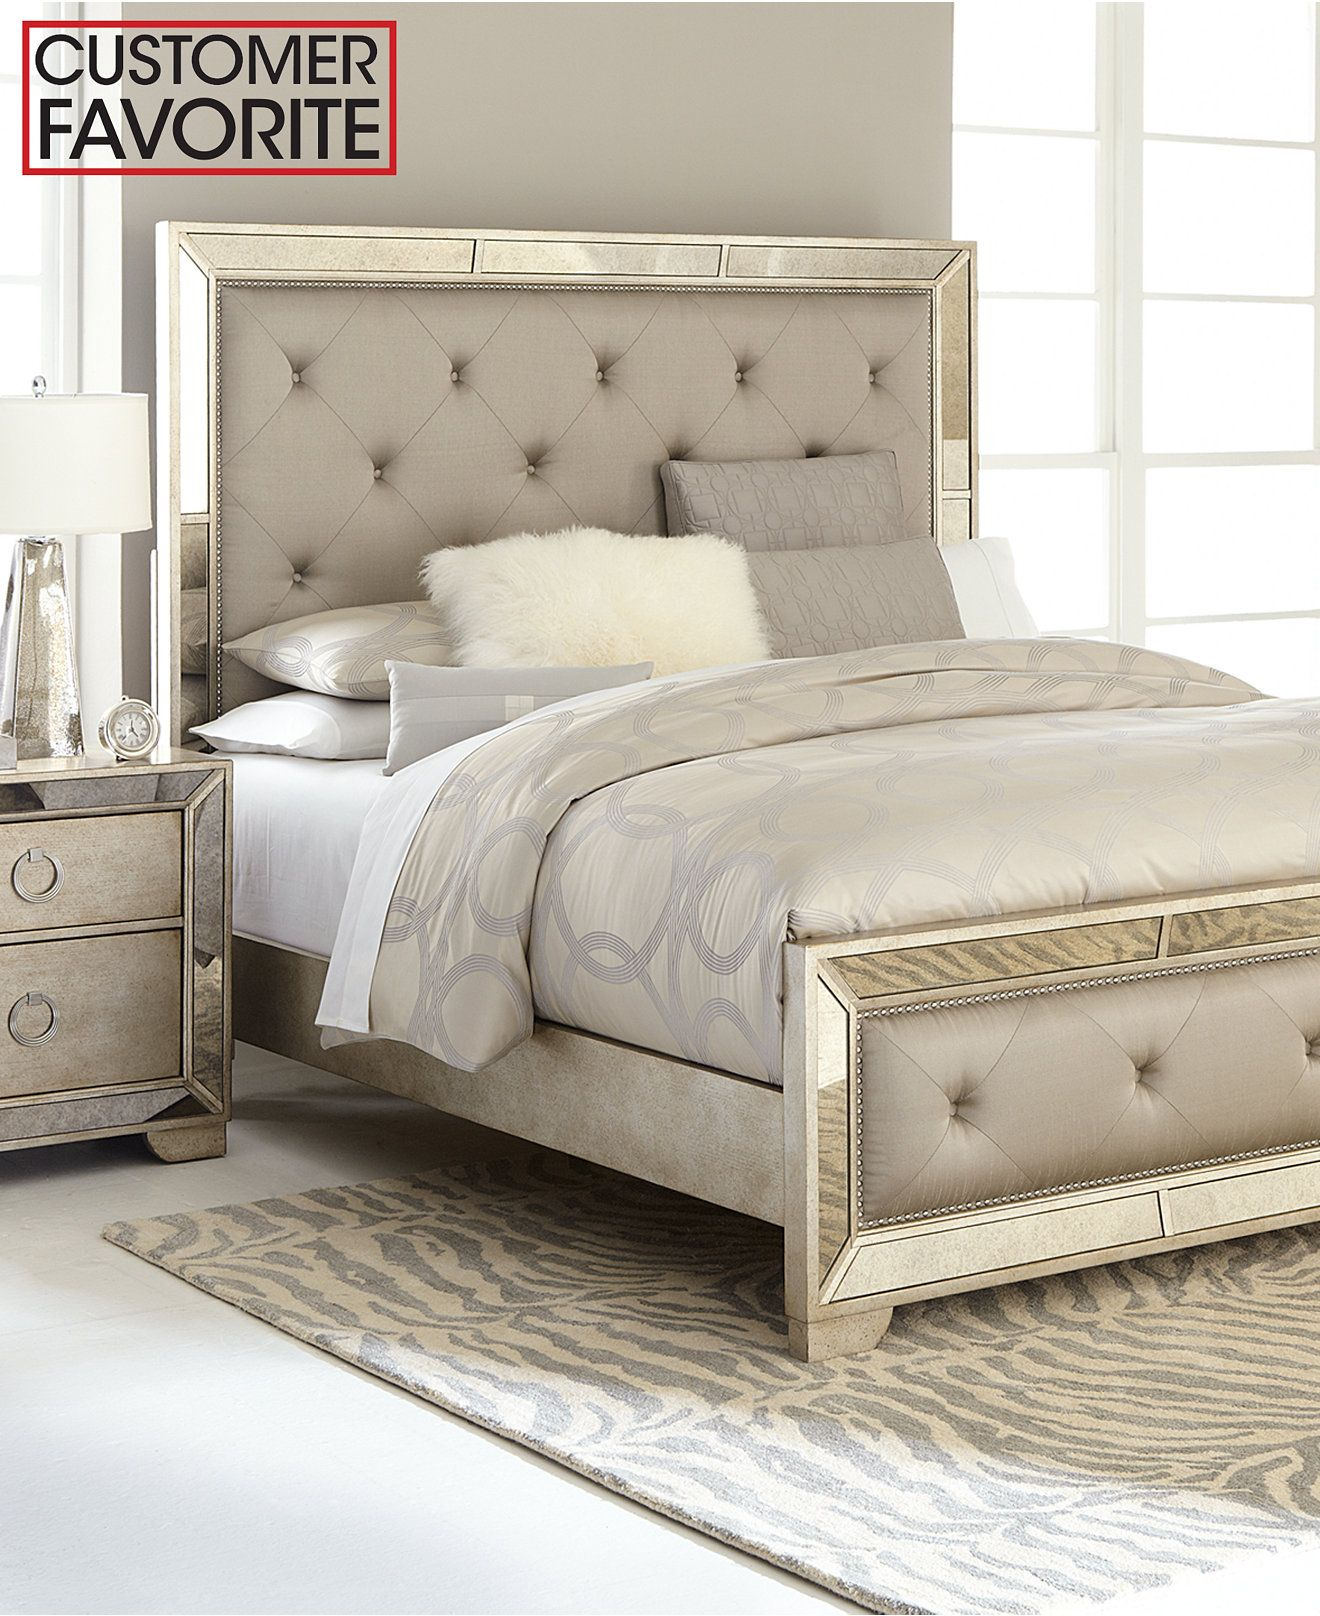 Ailey Bedroom Furniture Collection